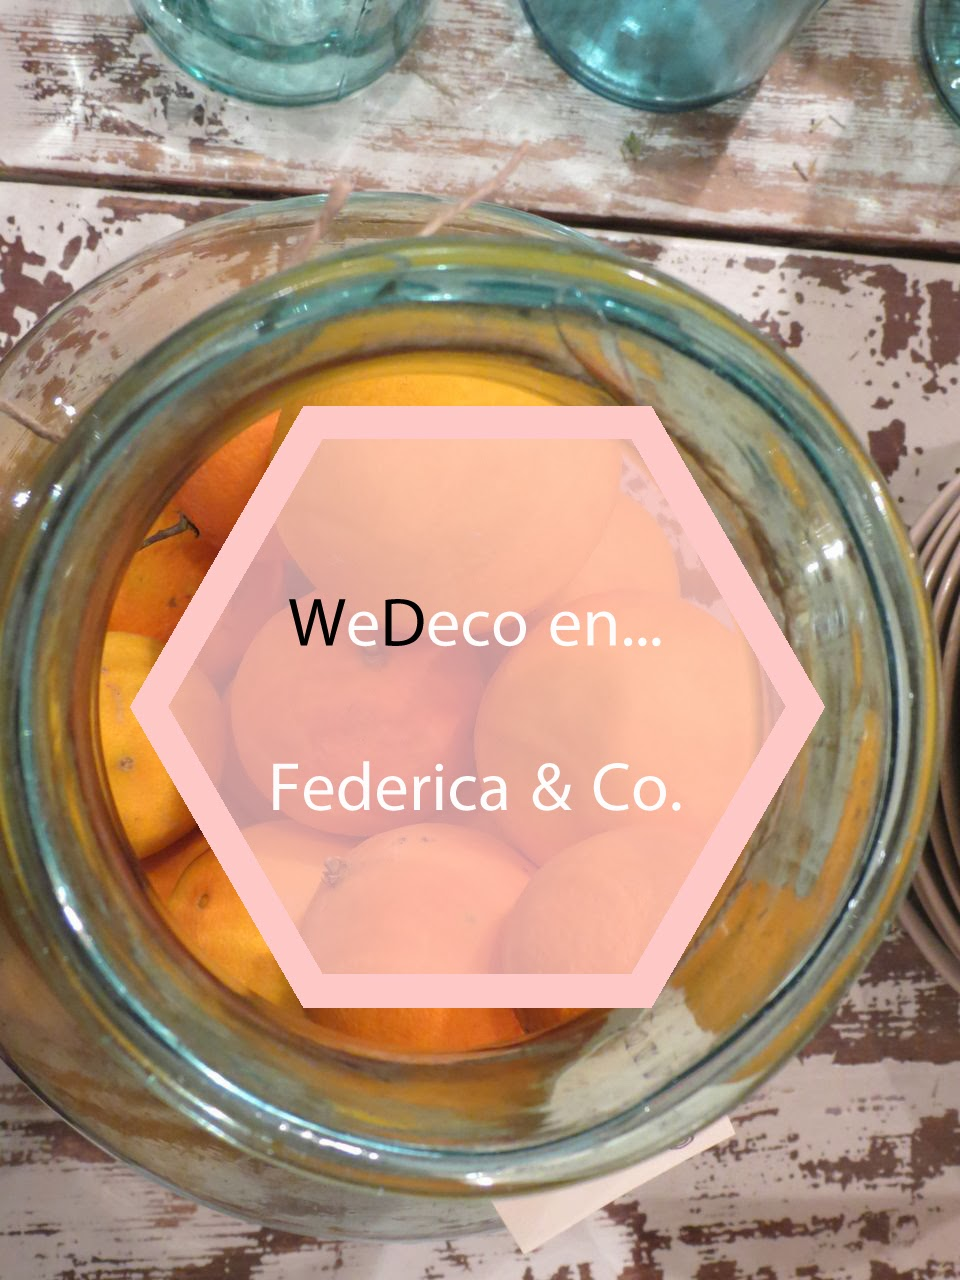 Federica & Co. Madrid